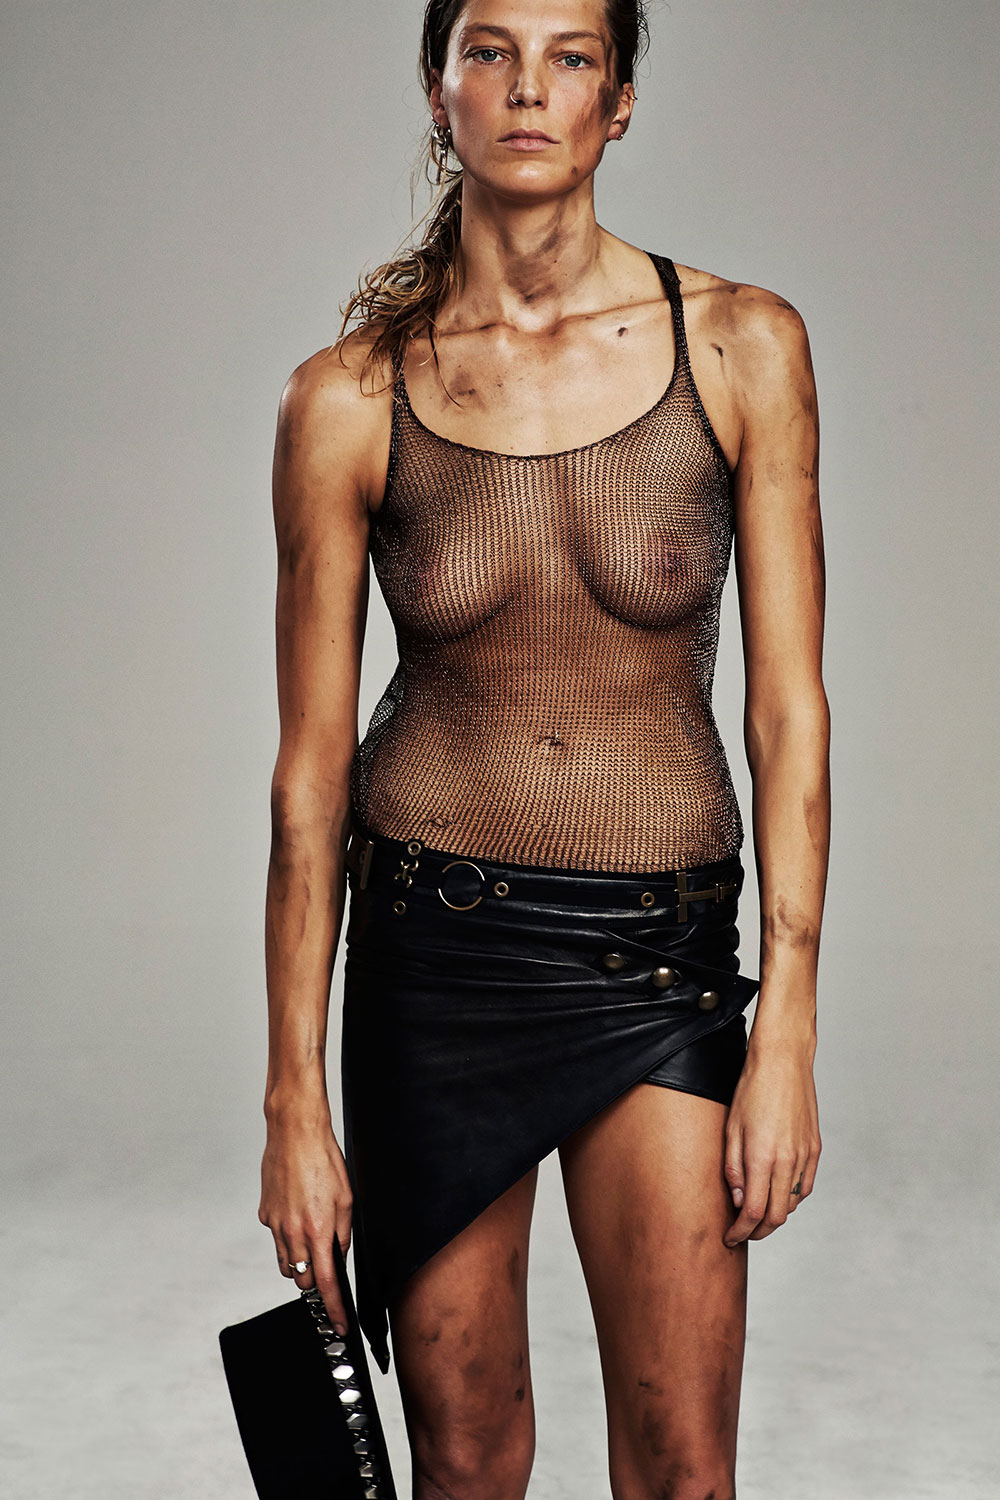 Daria Werbowy See-thru Photos 1